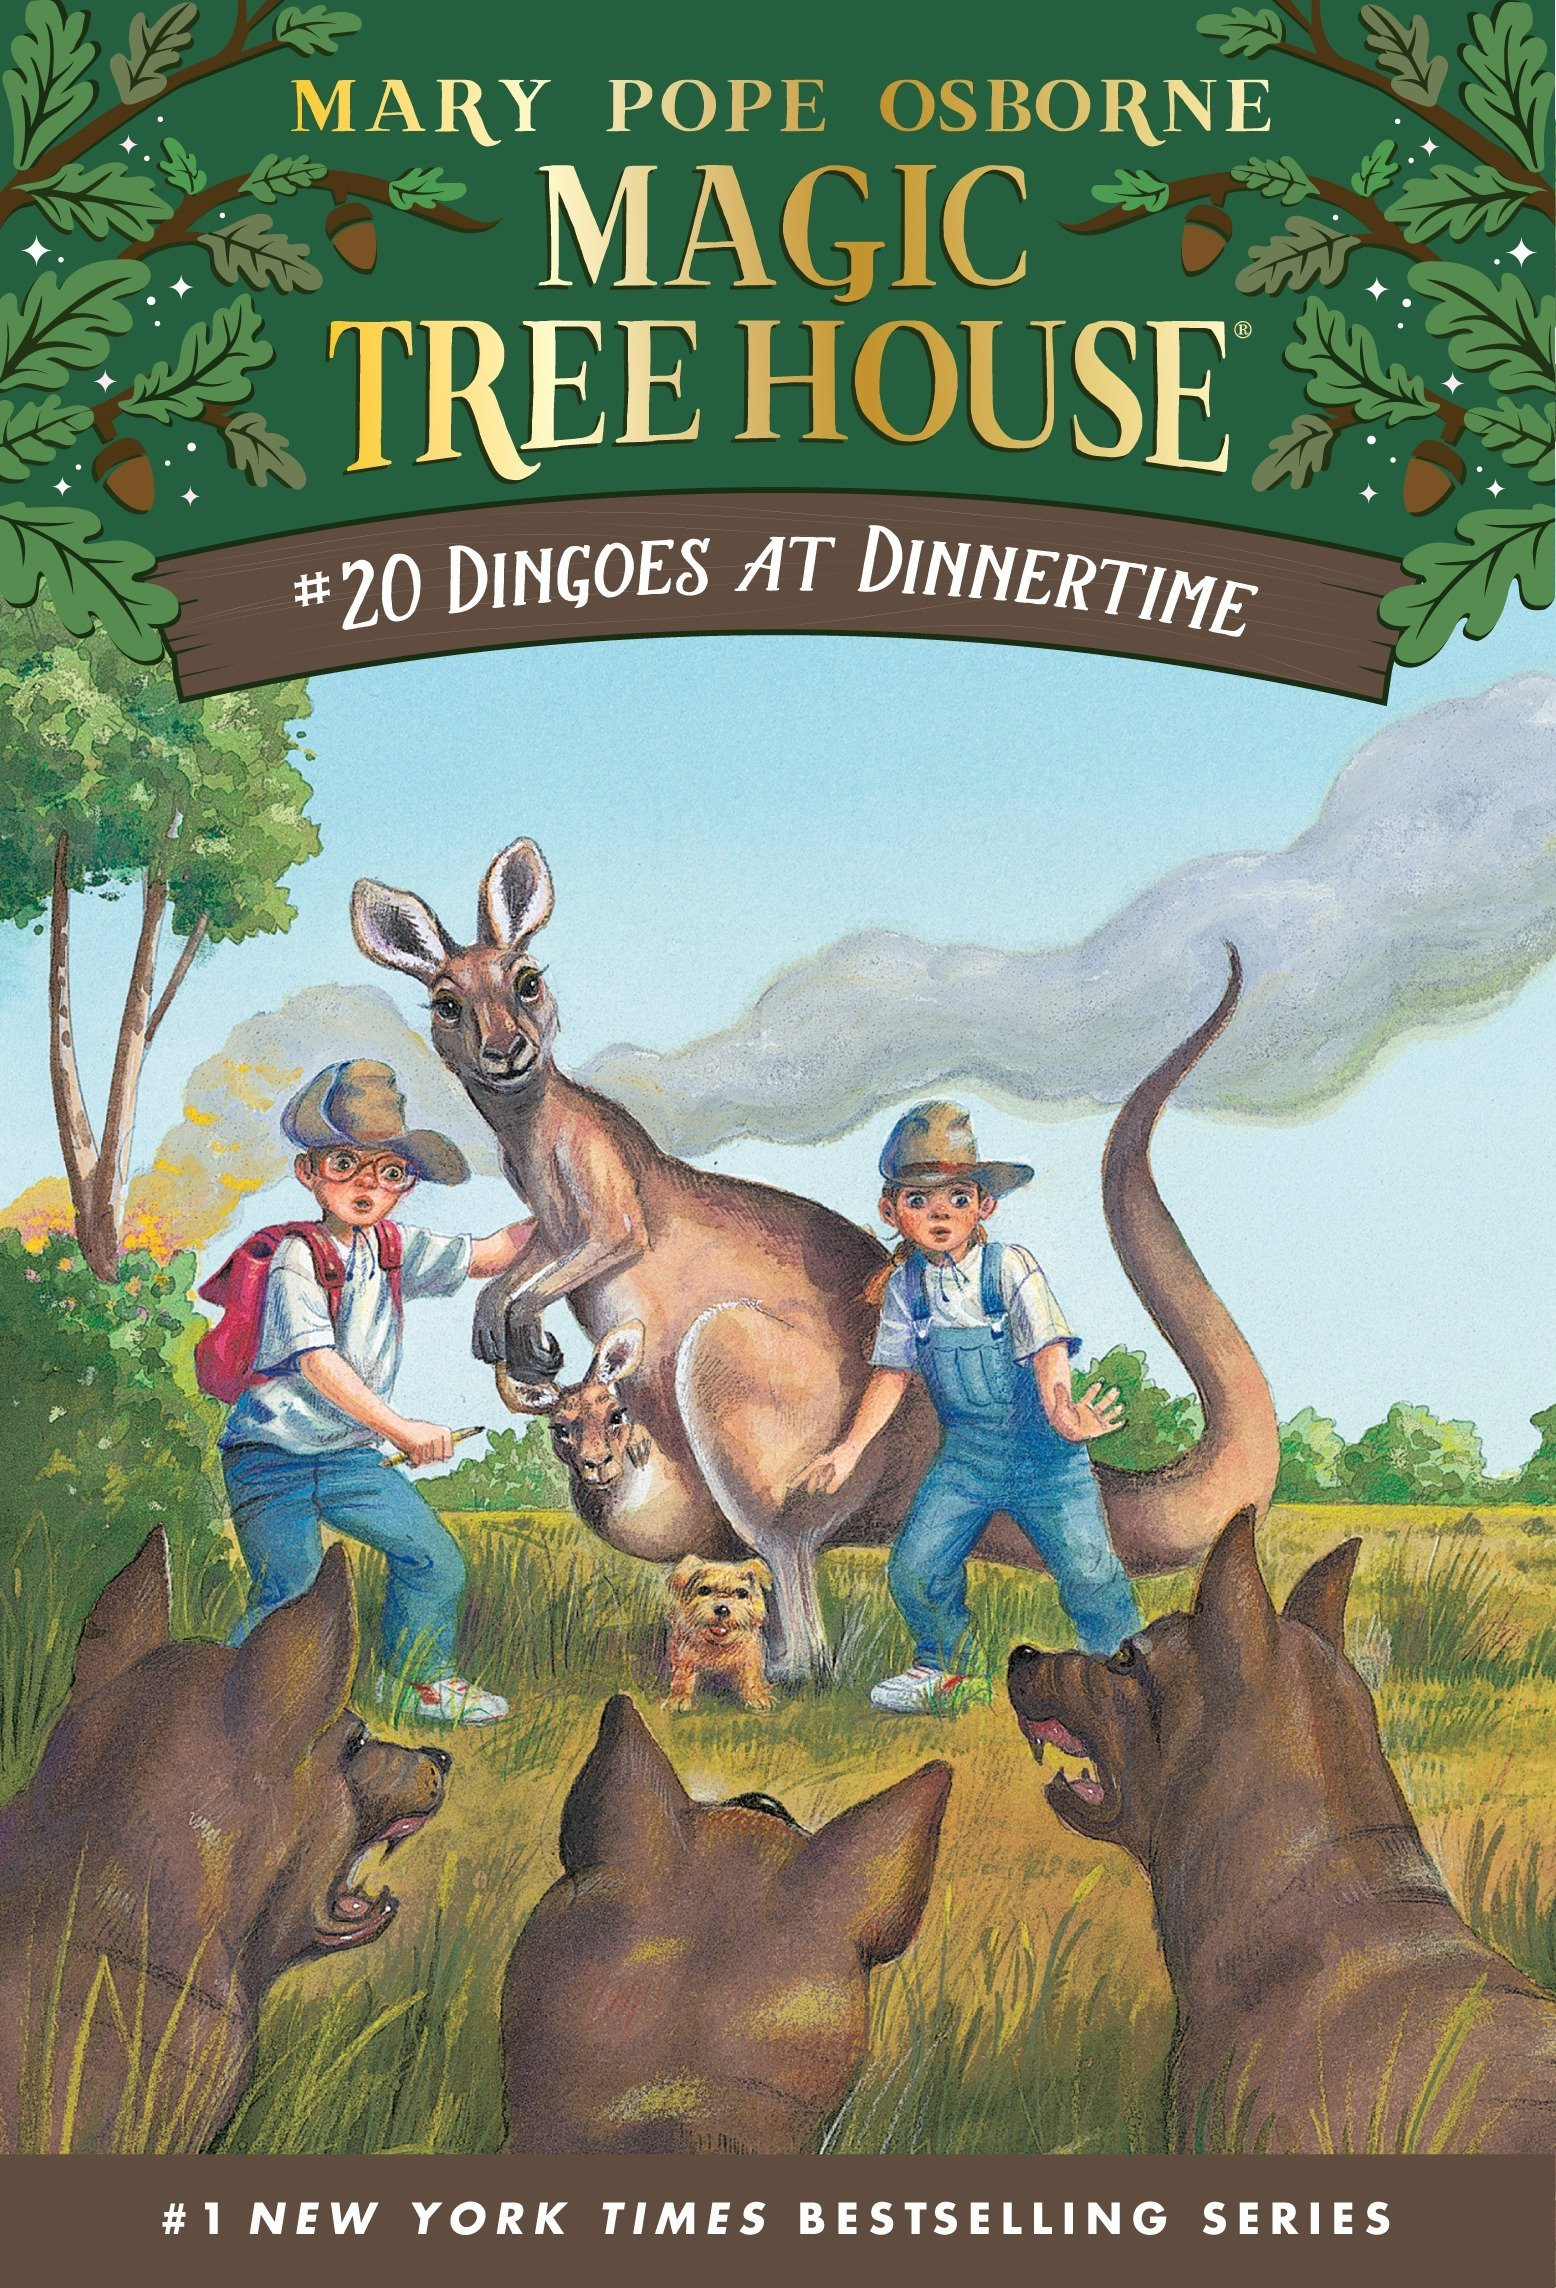 Dingoes Dinnertime Magic Tree House product image